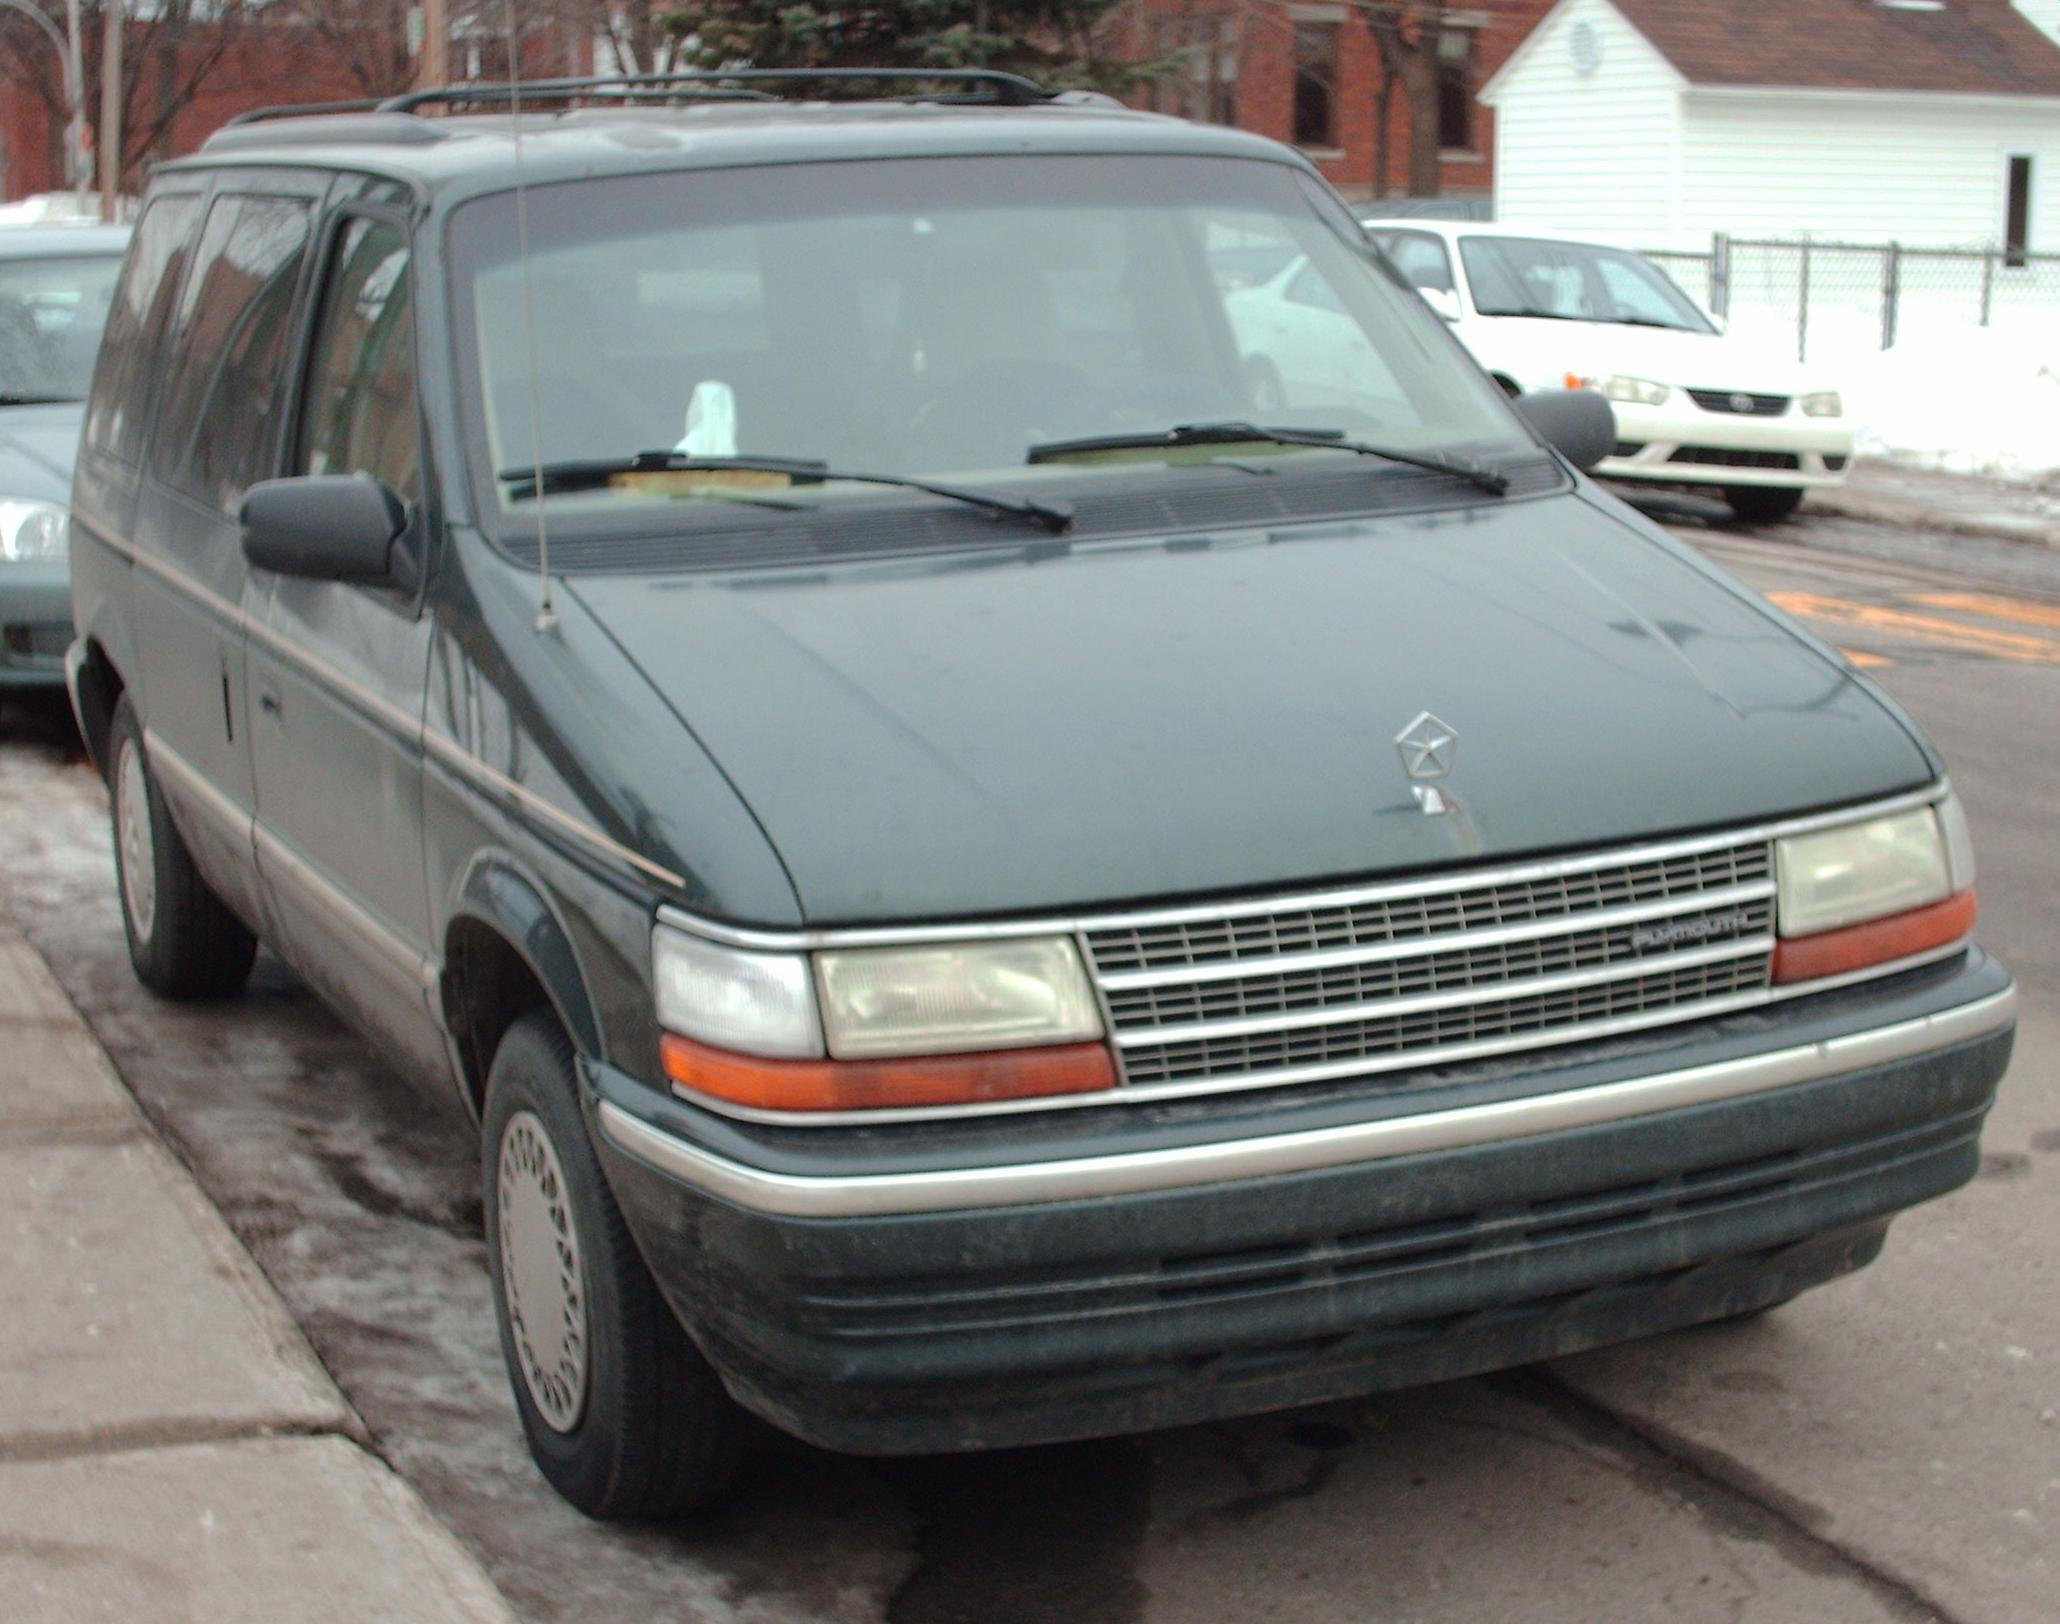 Plymouth voyager photo - 1